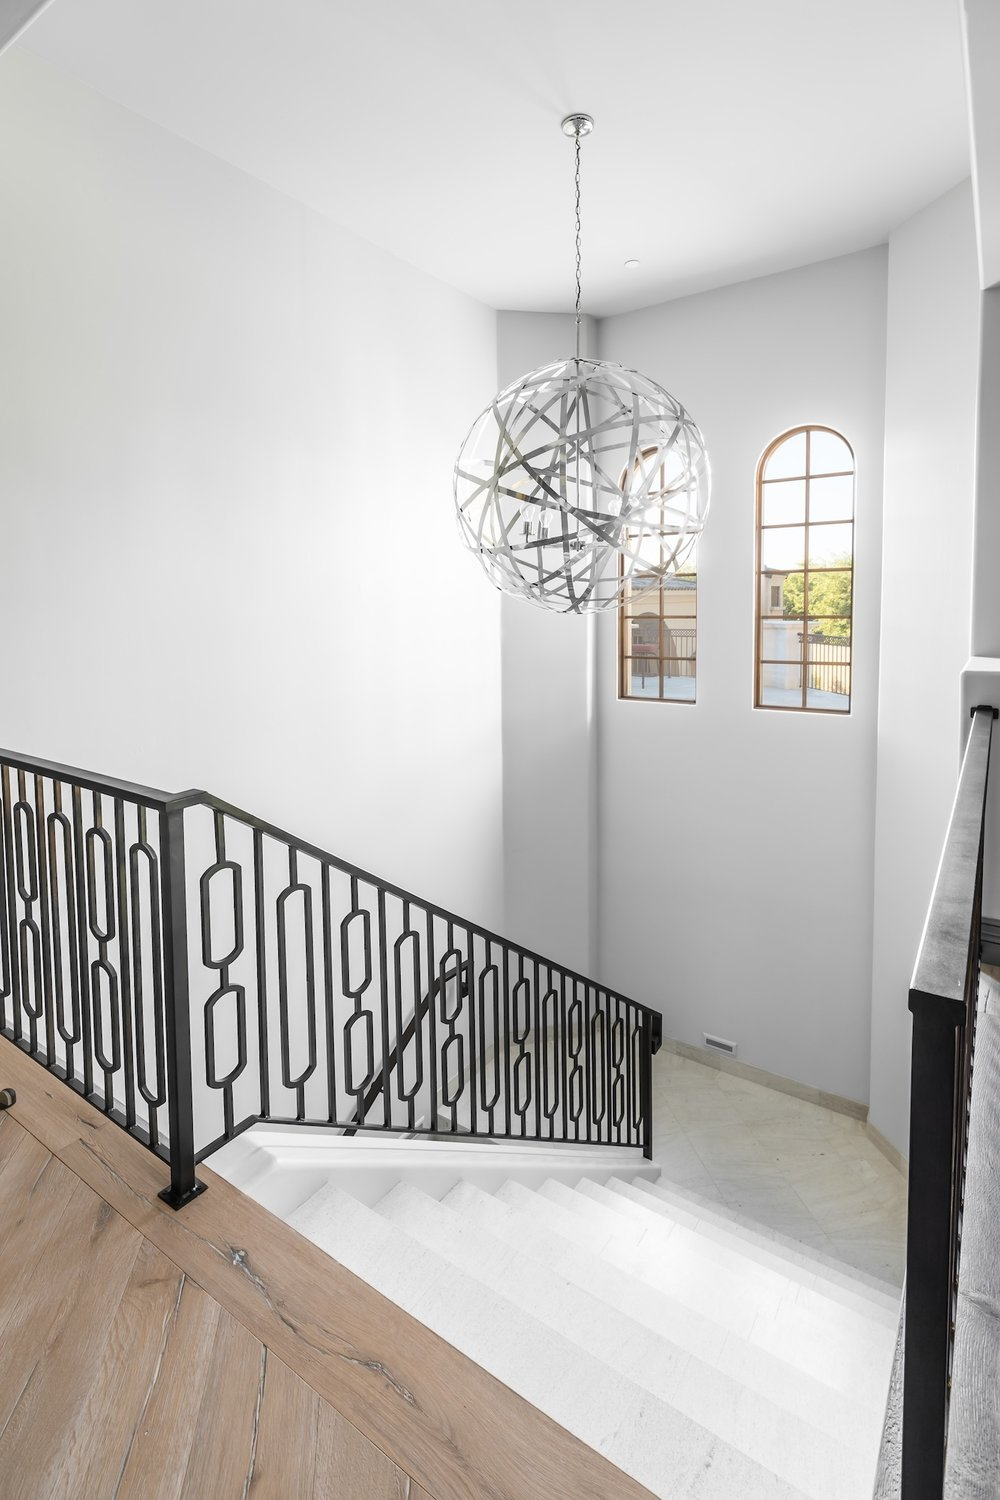 CONTEMPORARY STEEL RAILING 12